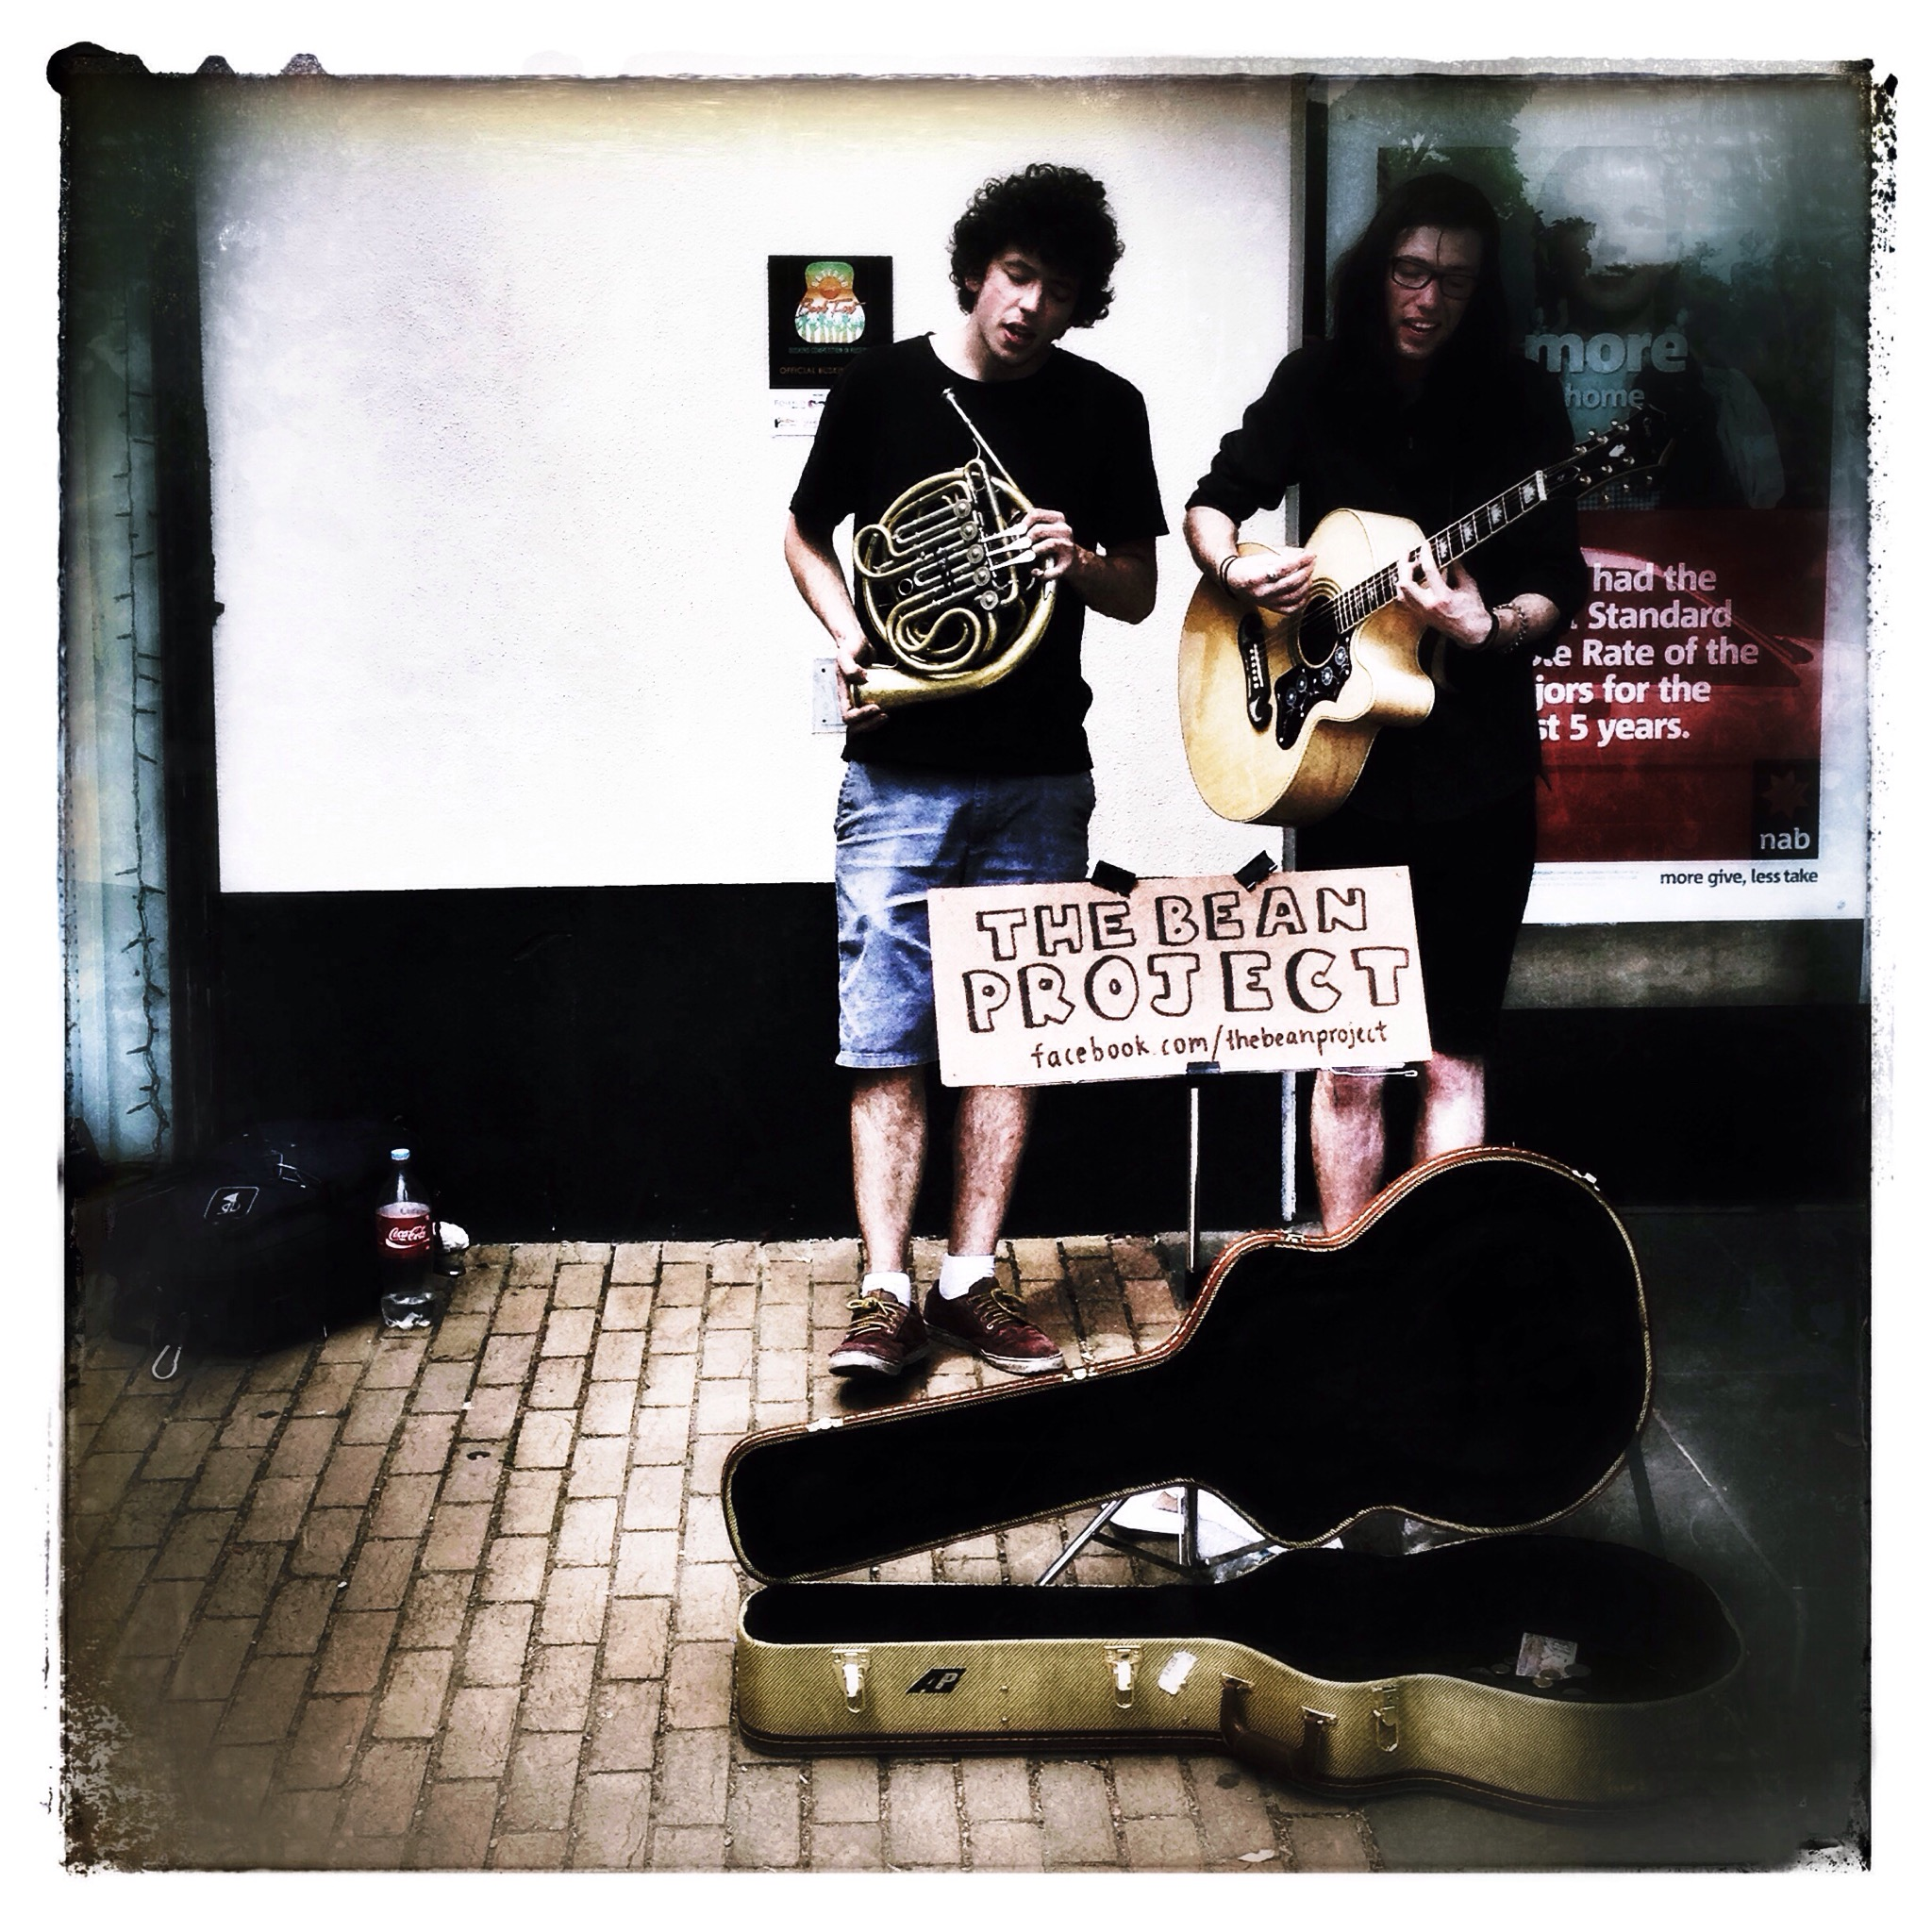 Day 1313. Buskers Extraordinaire